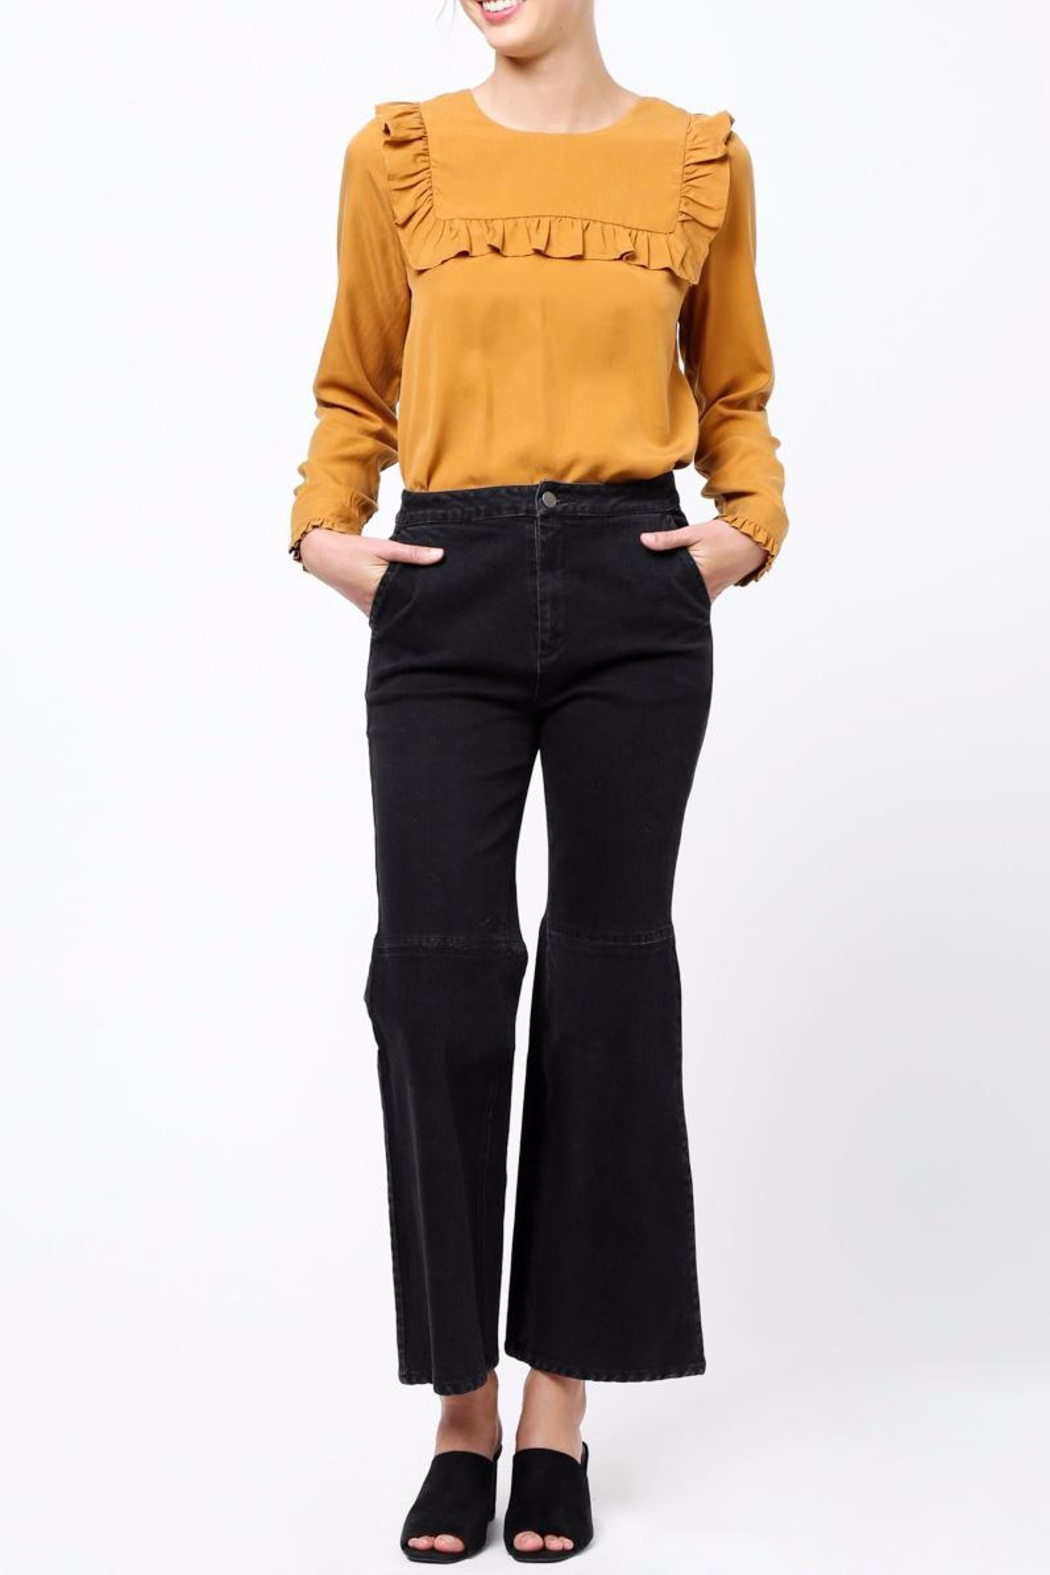 Movint Flared Hem Detail Pants - Back Cropped Image